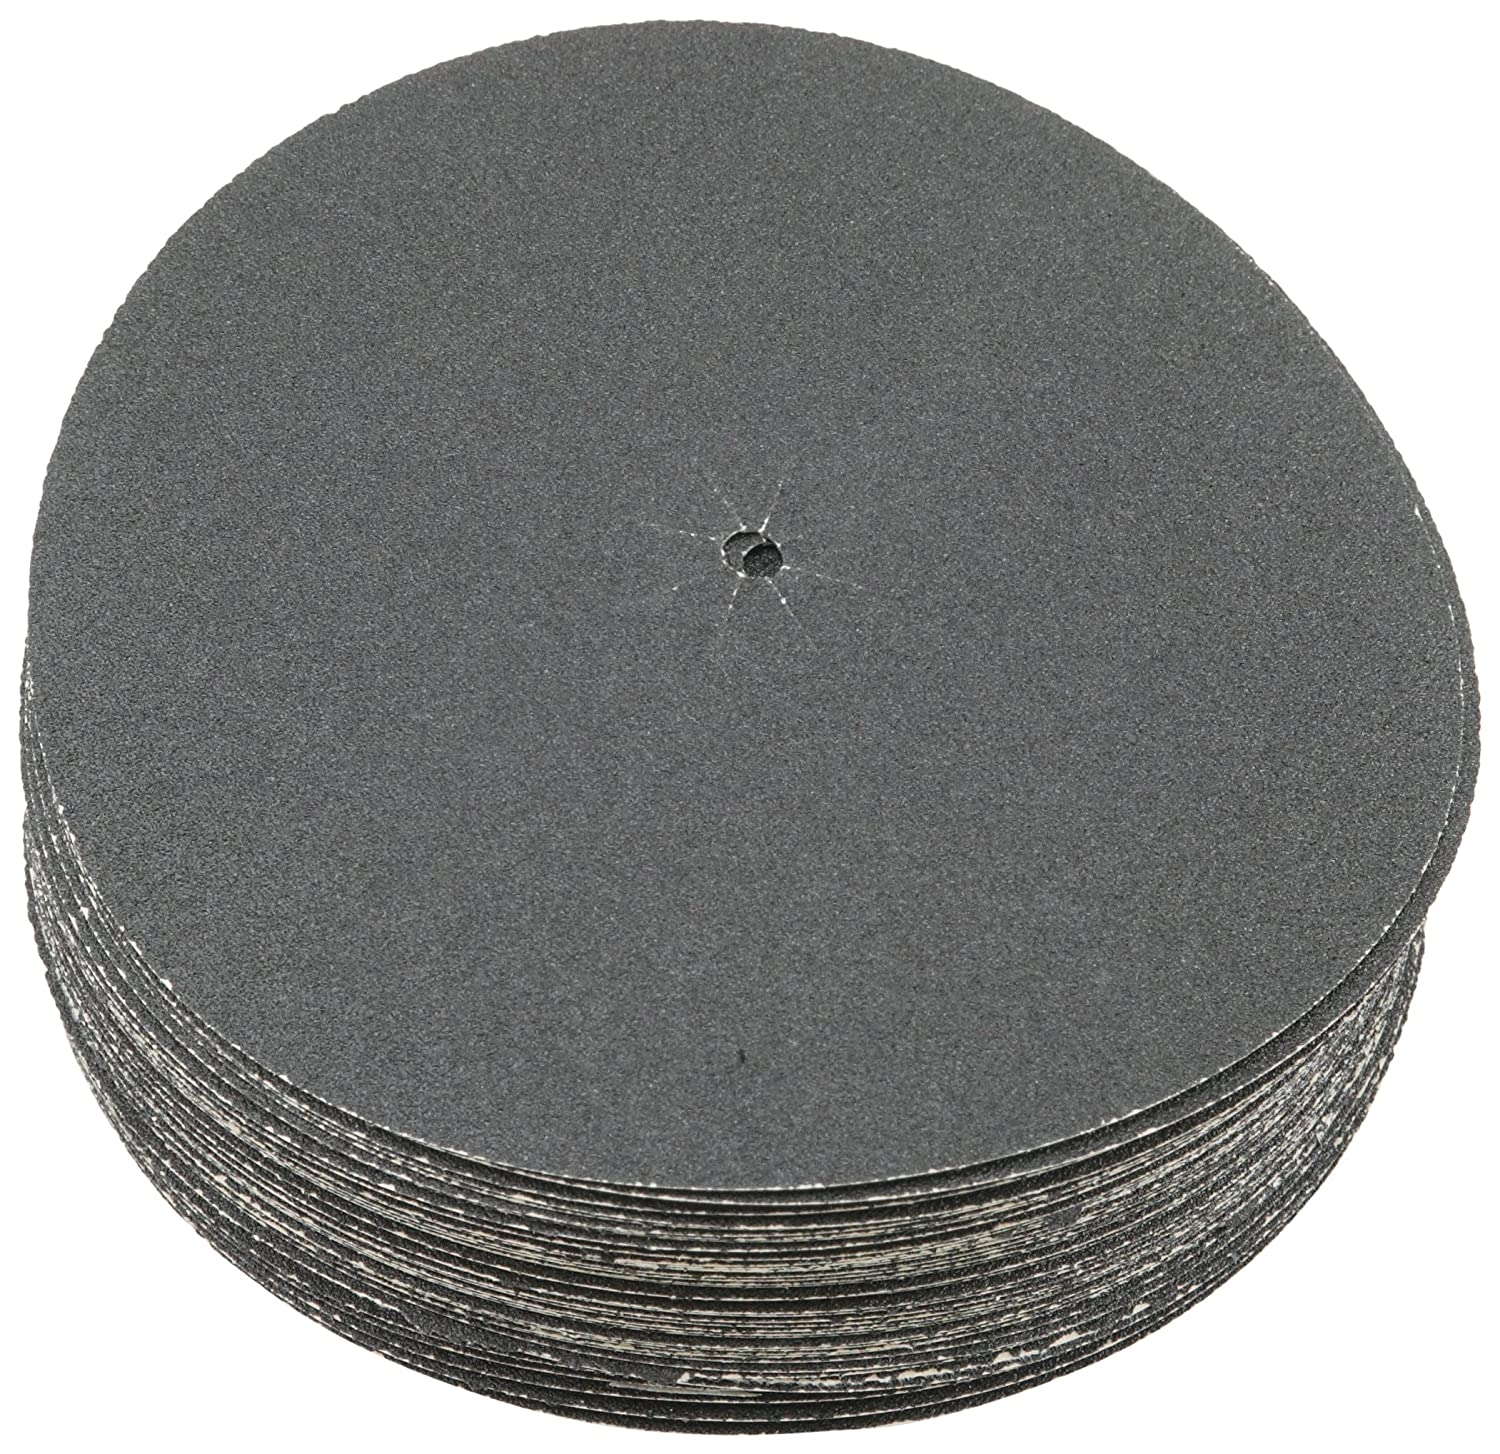 Sungold Abrasives 87402 Plain Backed Edger Discs for Floor Sanders 36 Grit Heavyweight Silicon Carbide Paper with 7' x 5/16' Center Hole & Slits (50 Pack)